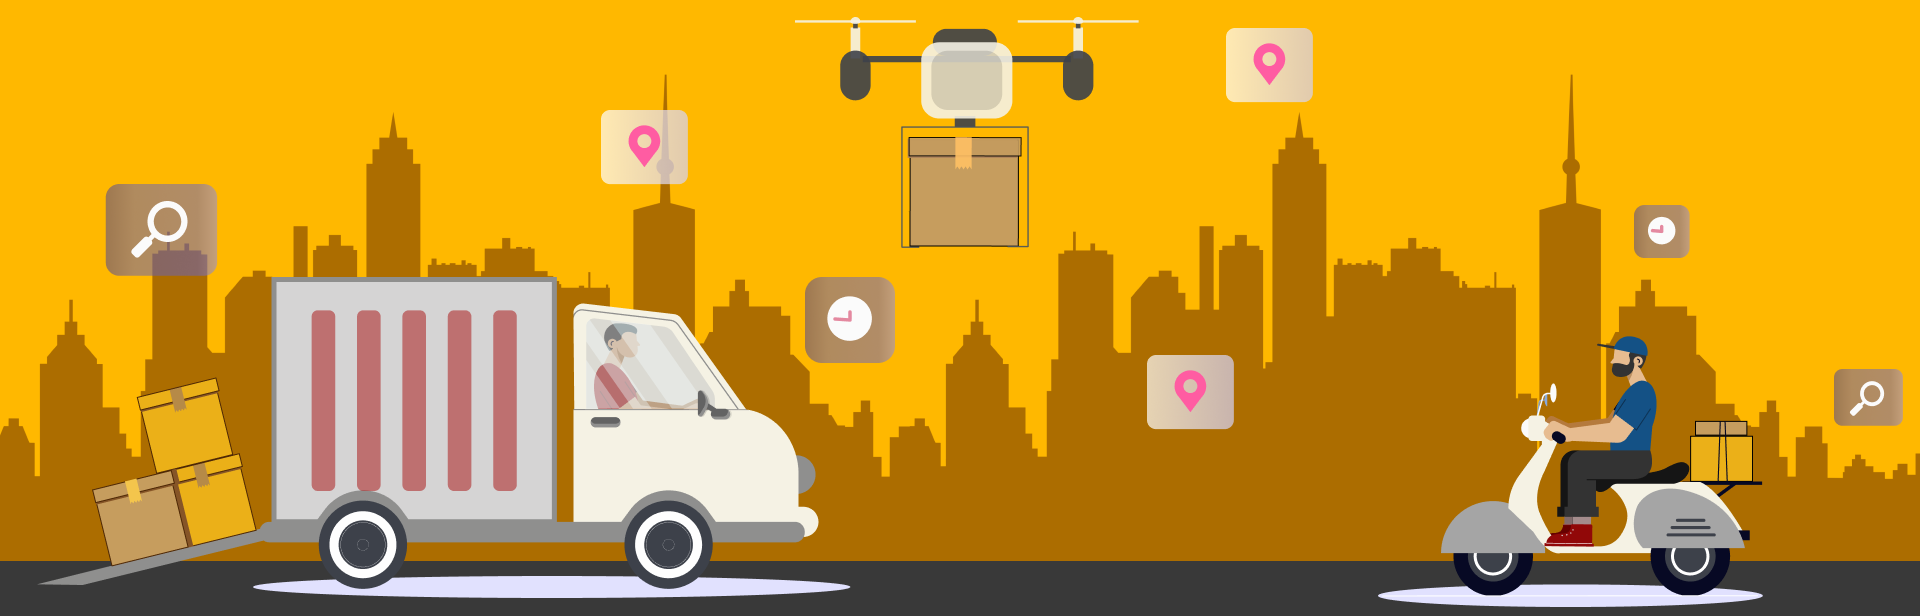 Applying IoT to Real-Time Delivery Management